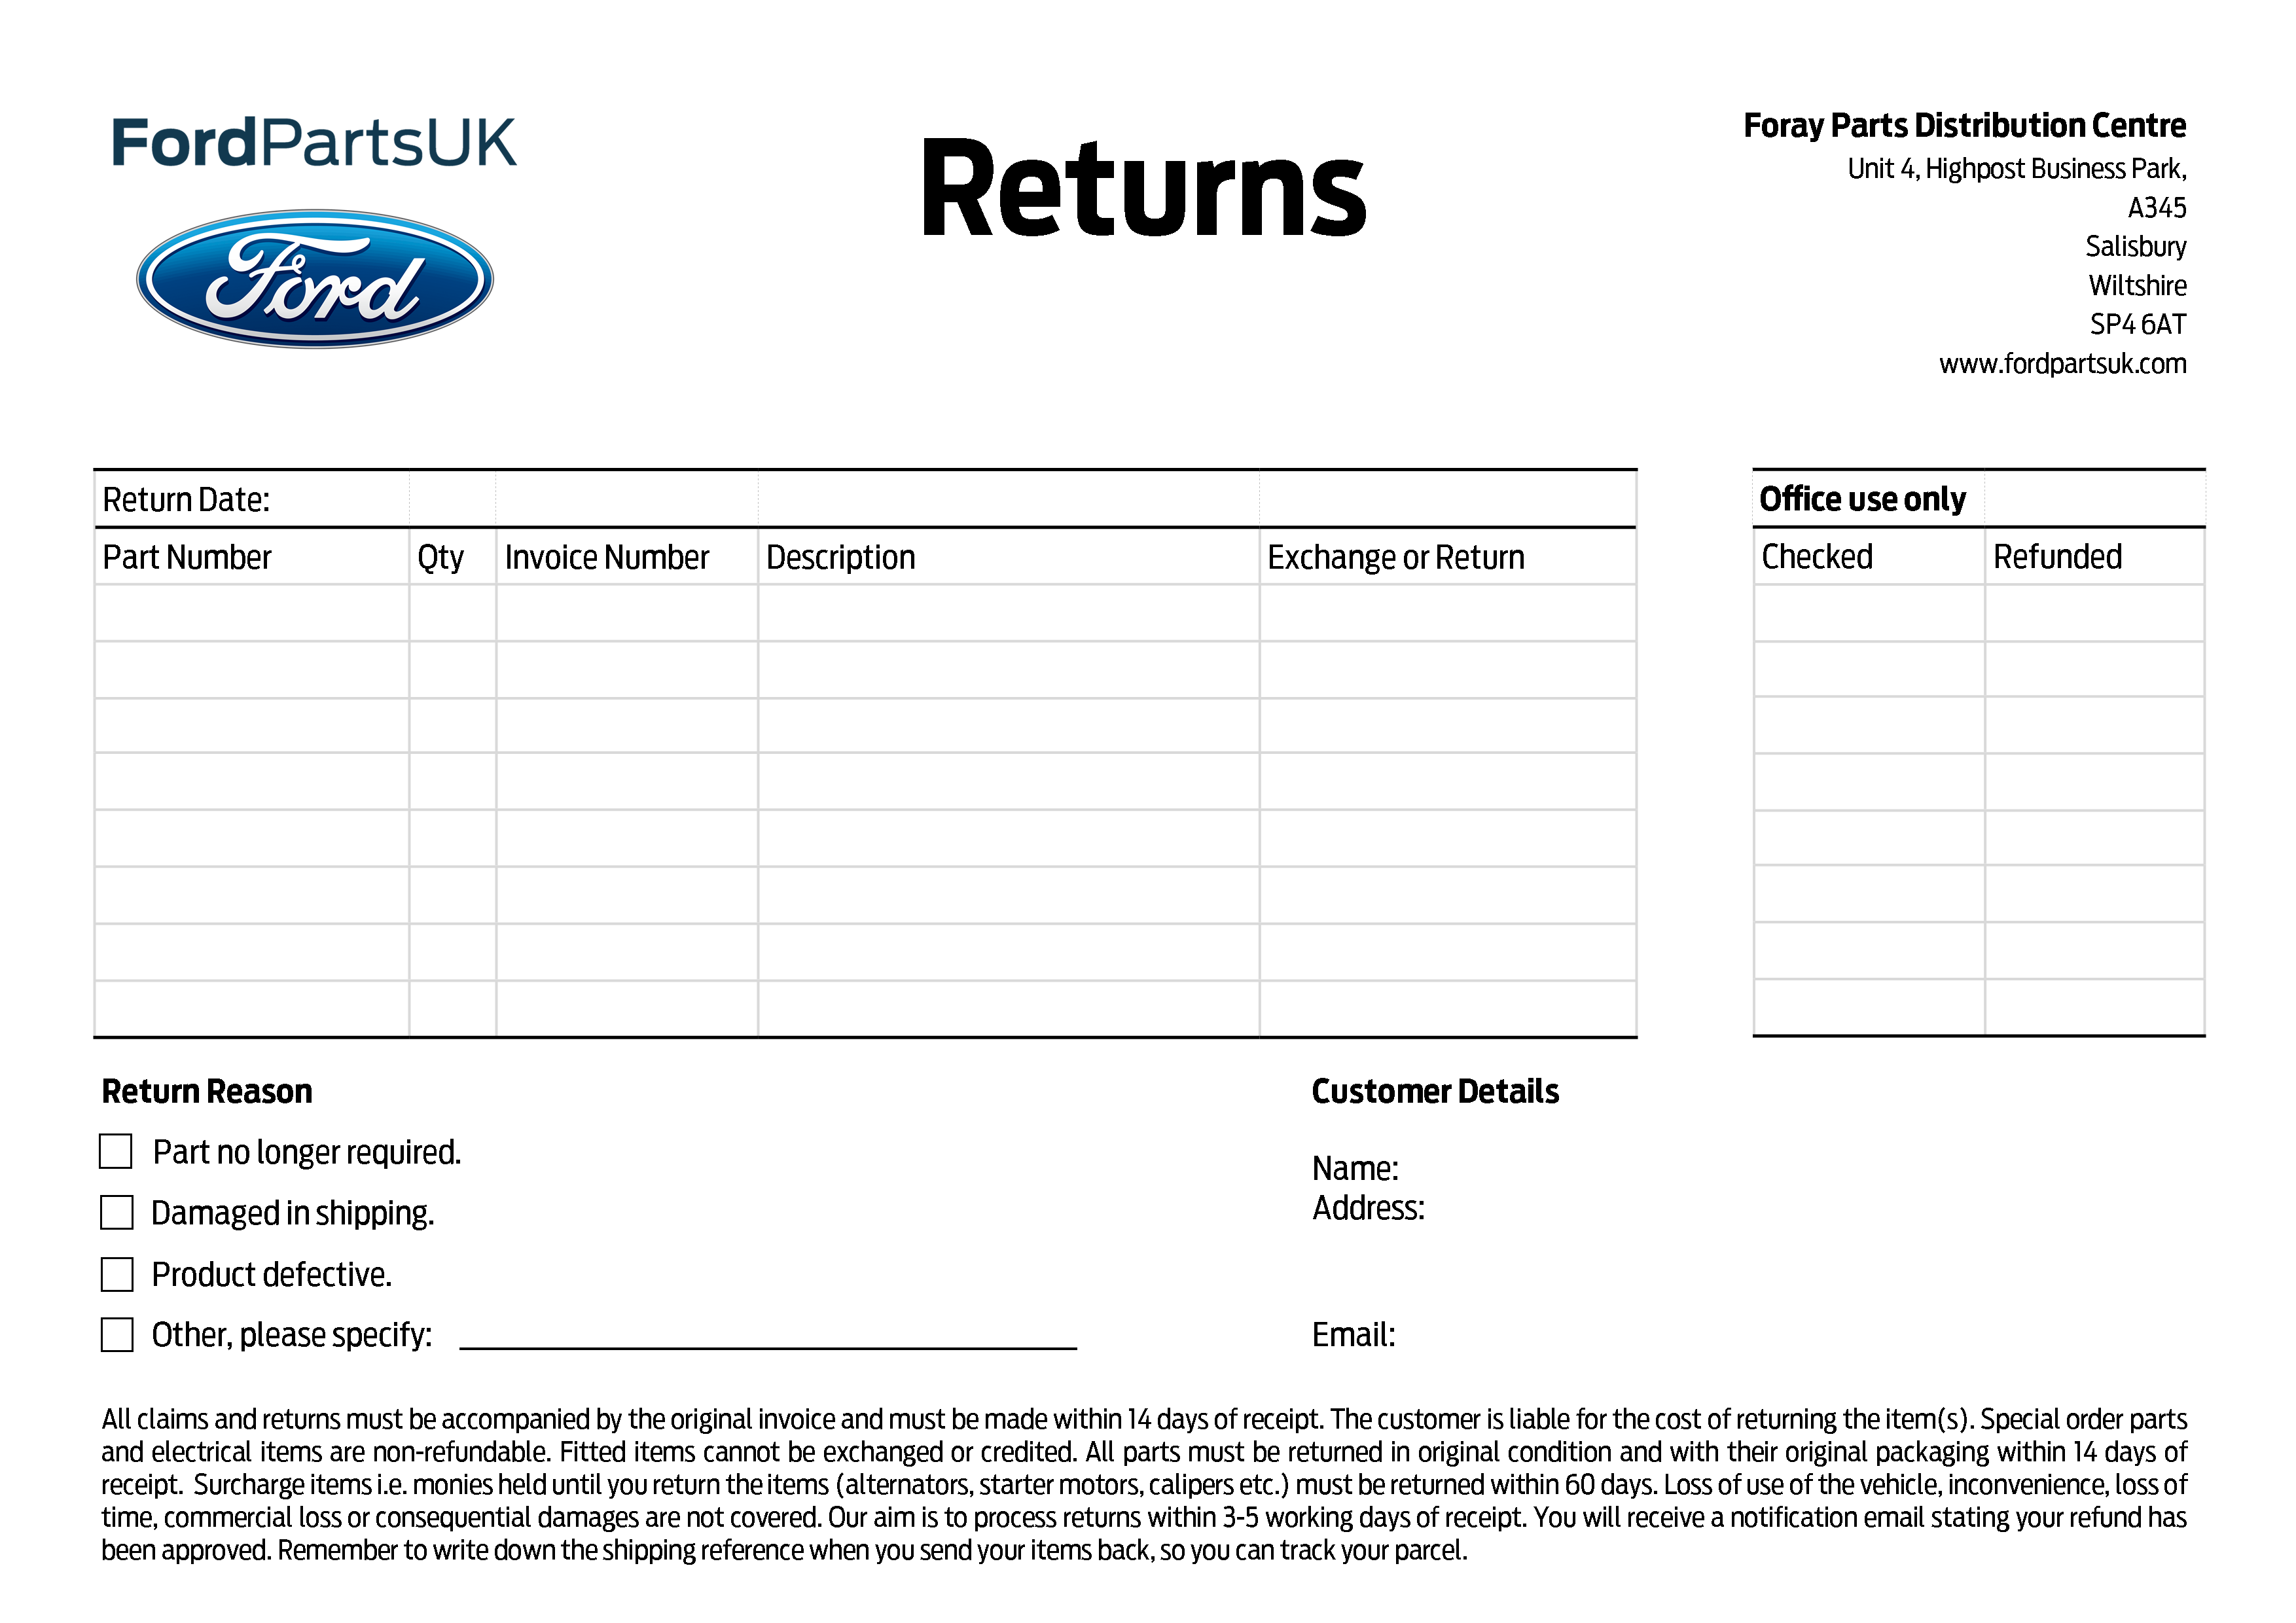 To obtain a refund or exchange make sure you include the original packaging and invoice